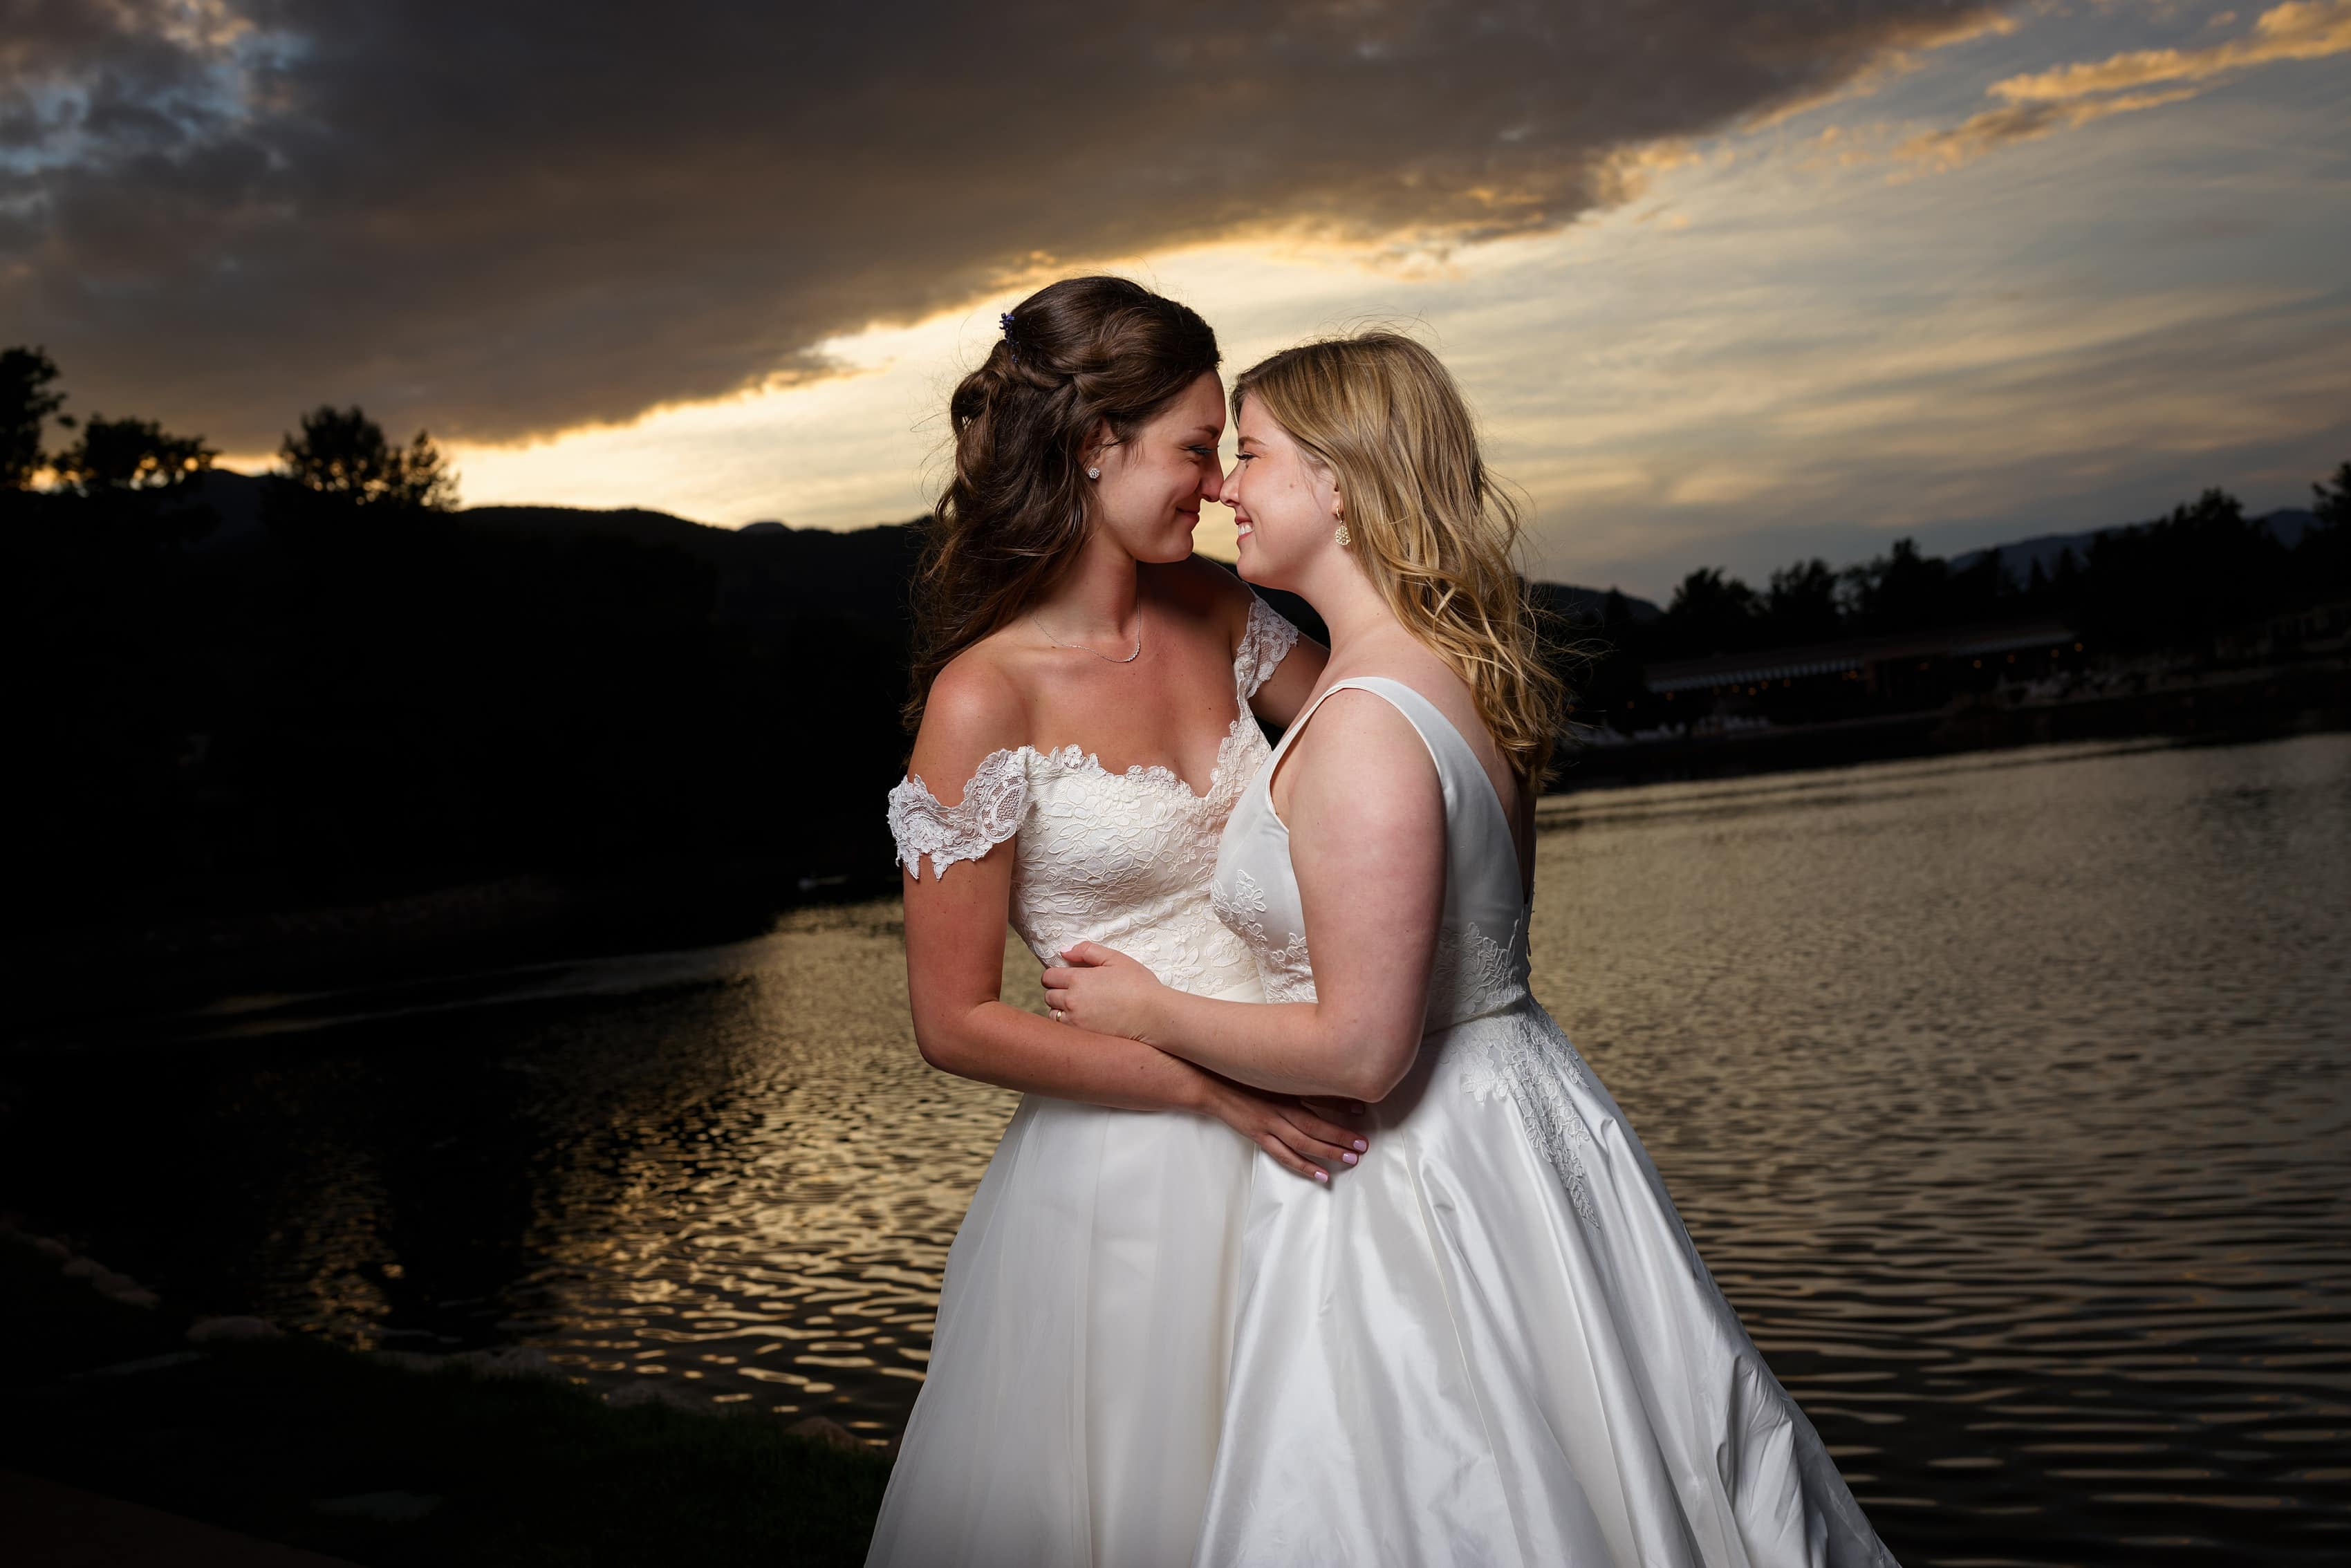 two brides pose for a sunset portrait on the bridge at The Broadmoor Hotel during their wedding